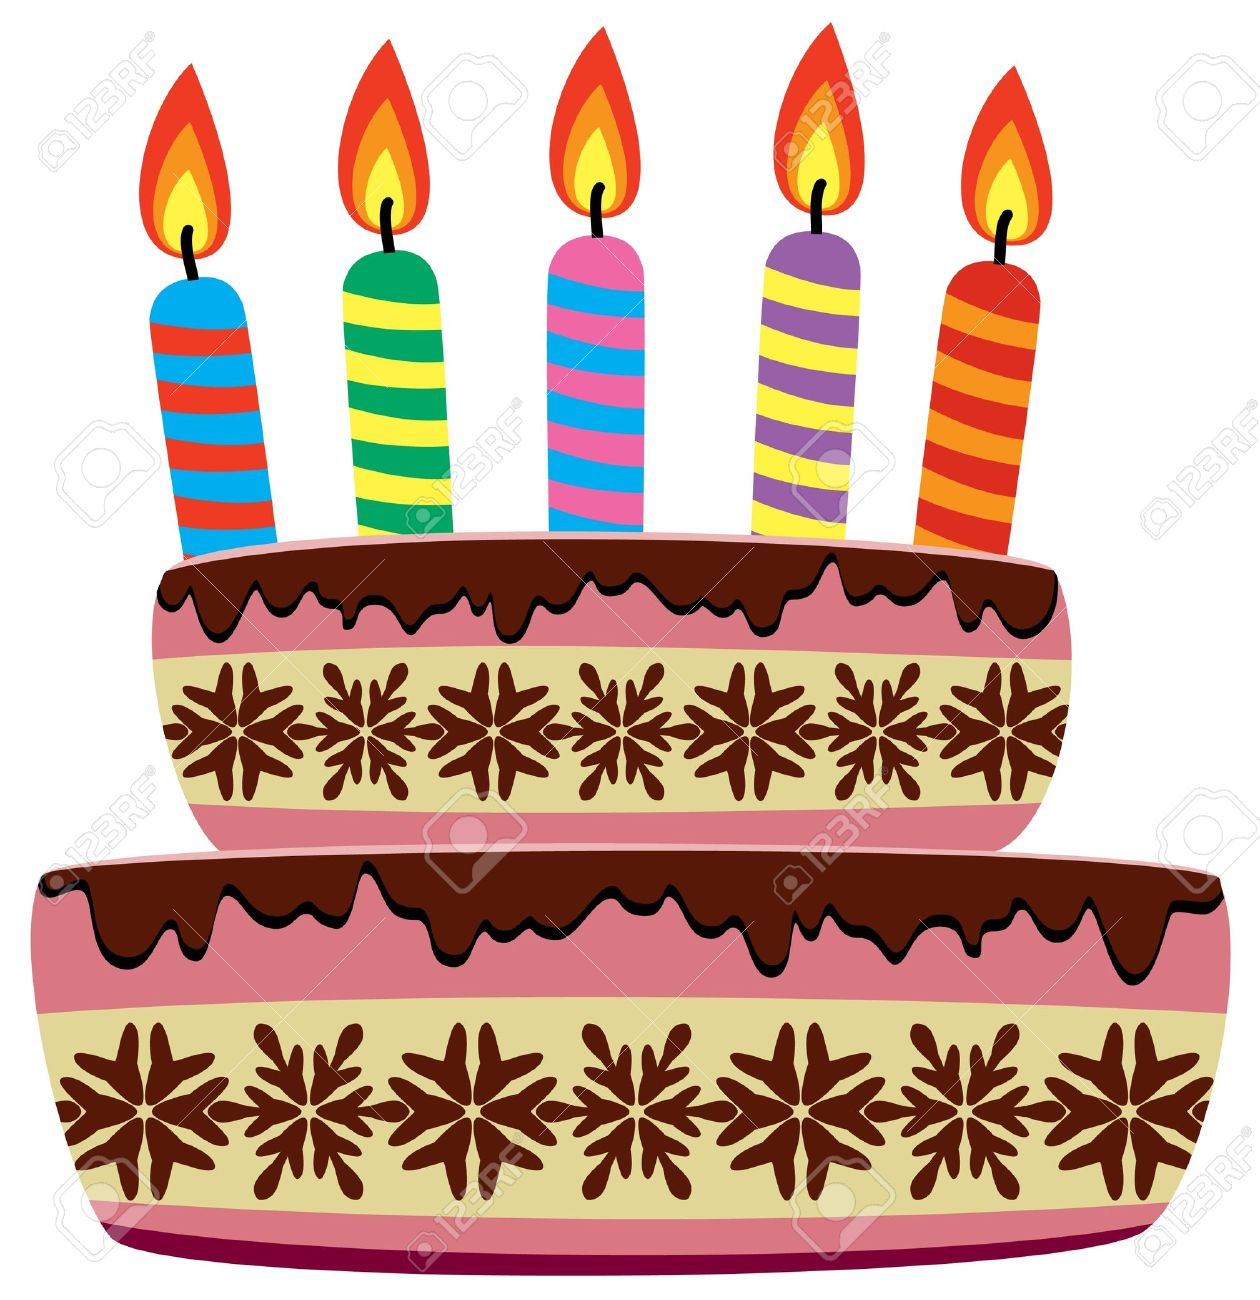 birthday cake with candles clipart ; 9206919-vector-birthday-cake-with-burning-candles